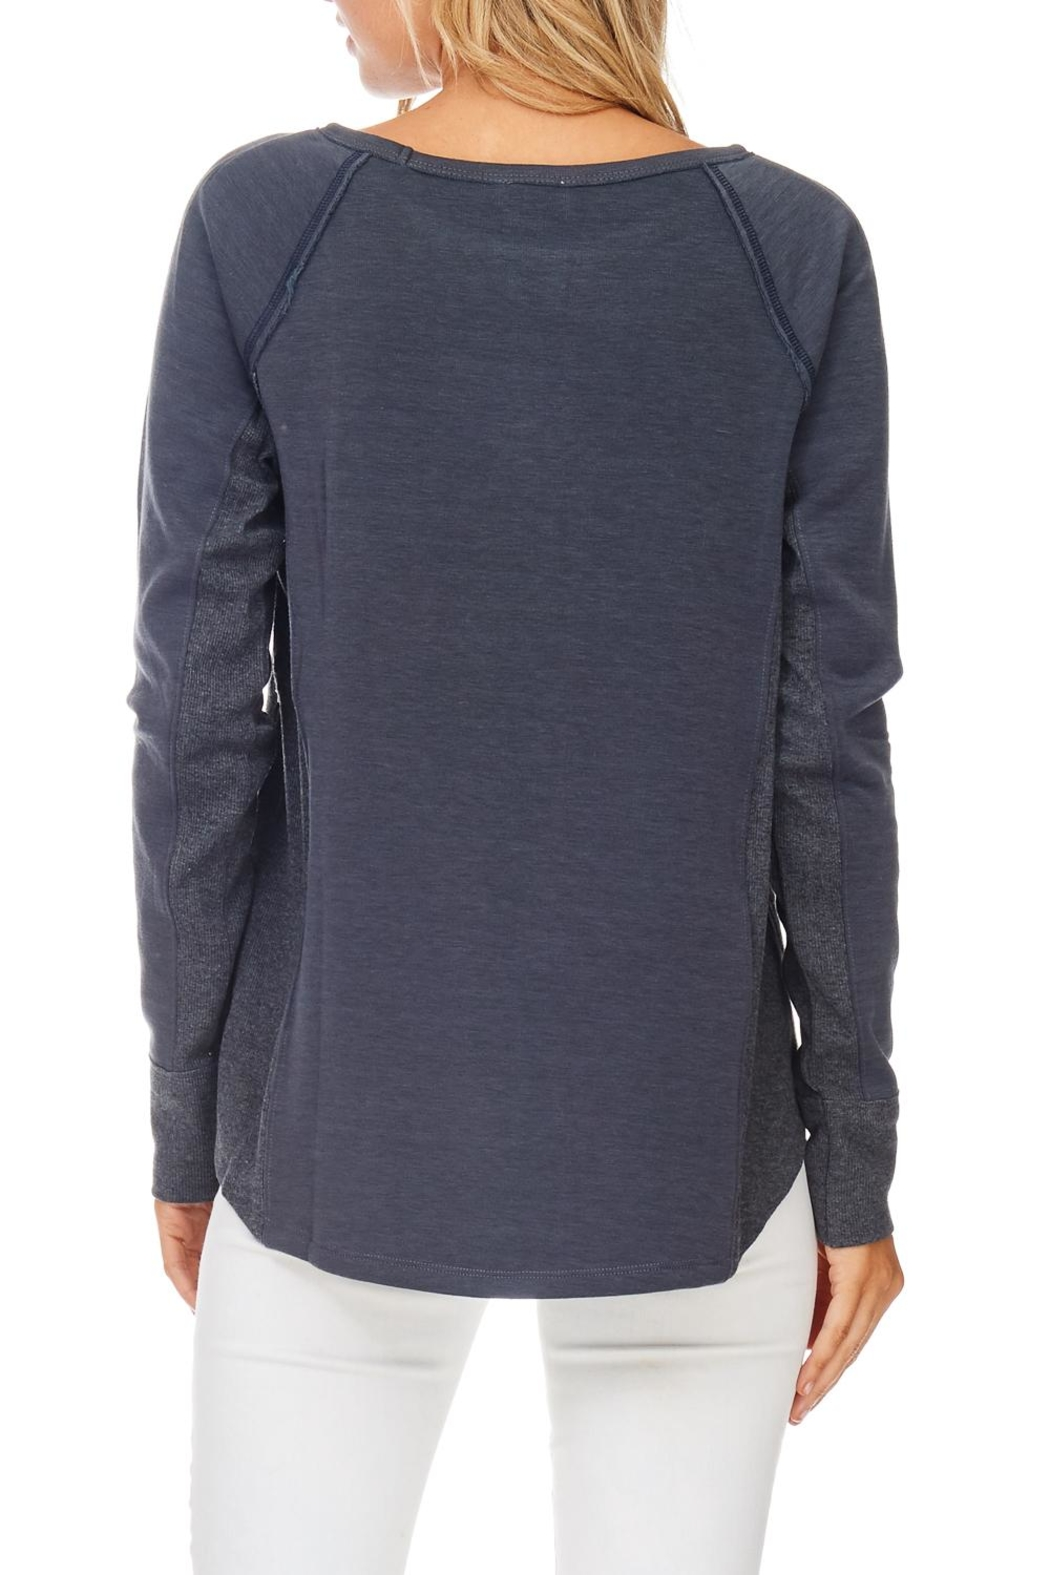 Hem & Thread Navy Stitched Pullover Top - Front Full Image